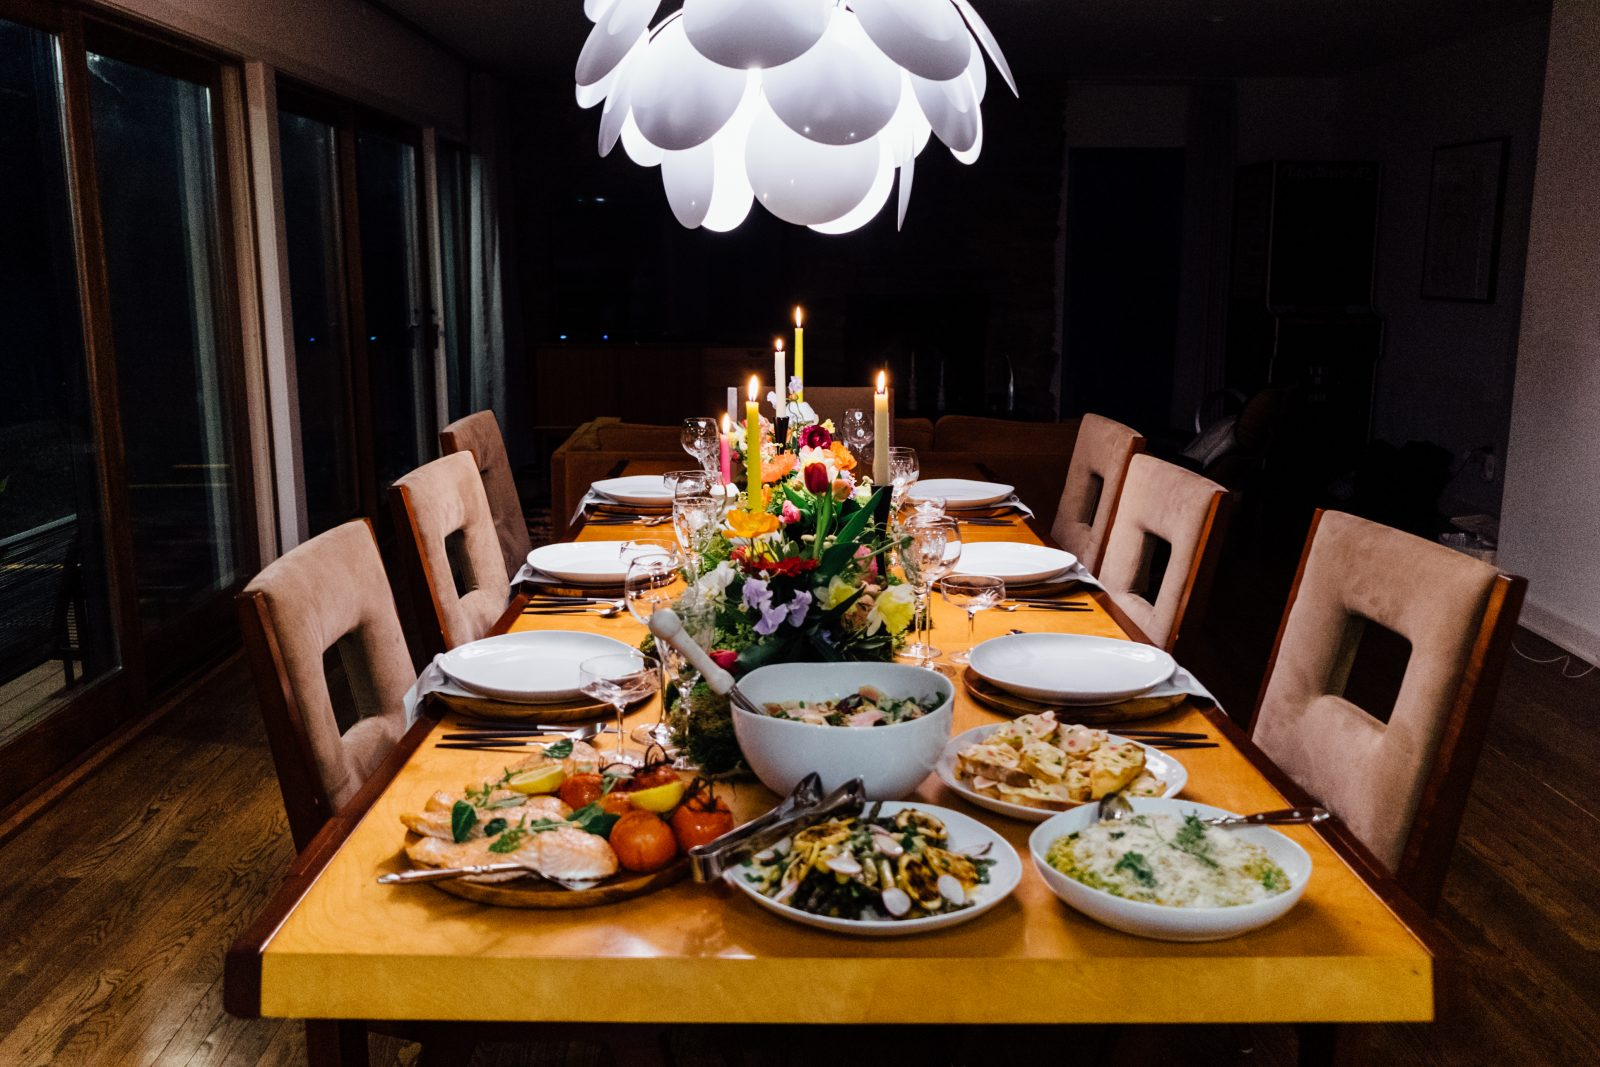 Setting the mood with lighting is a key thing to focus on when planning your next evening at home